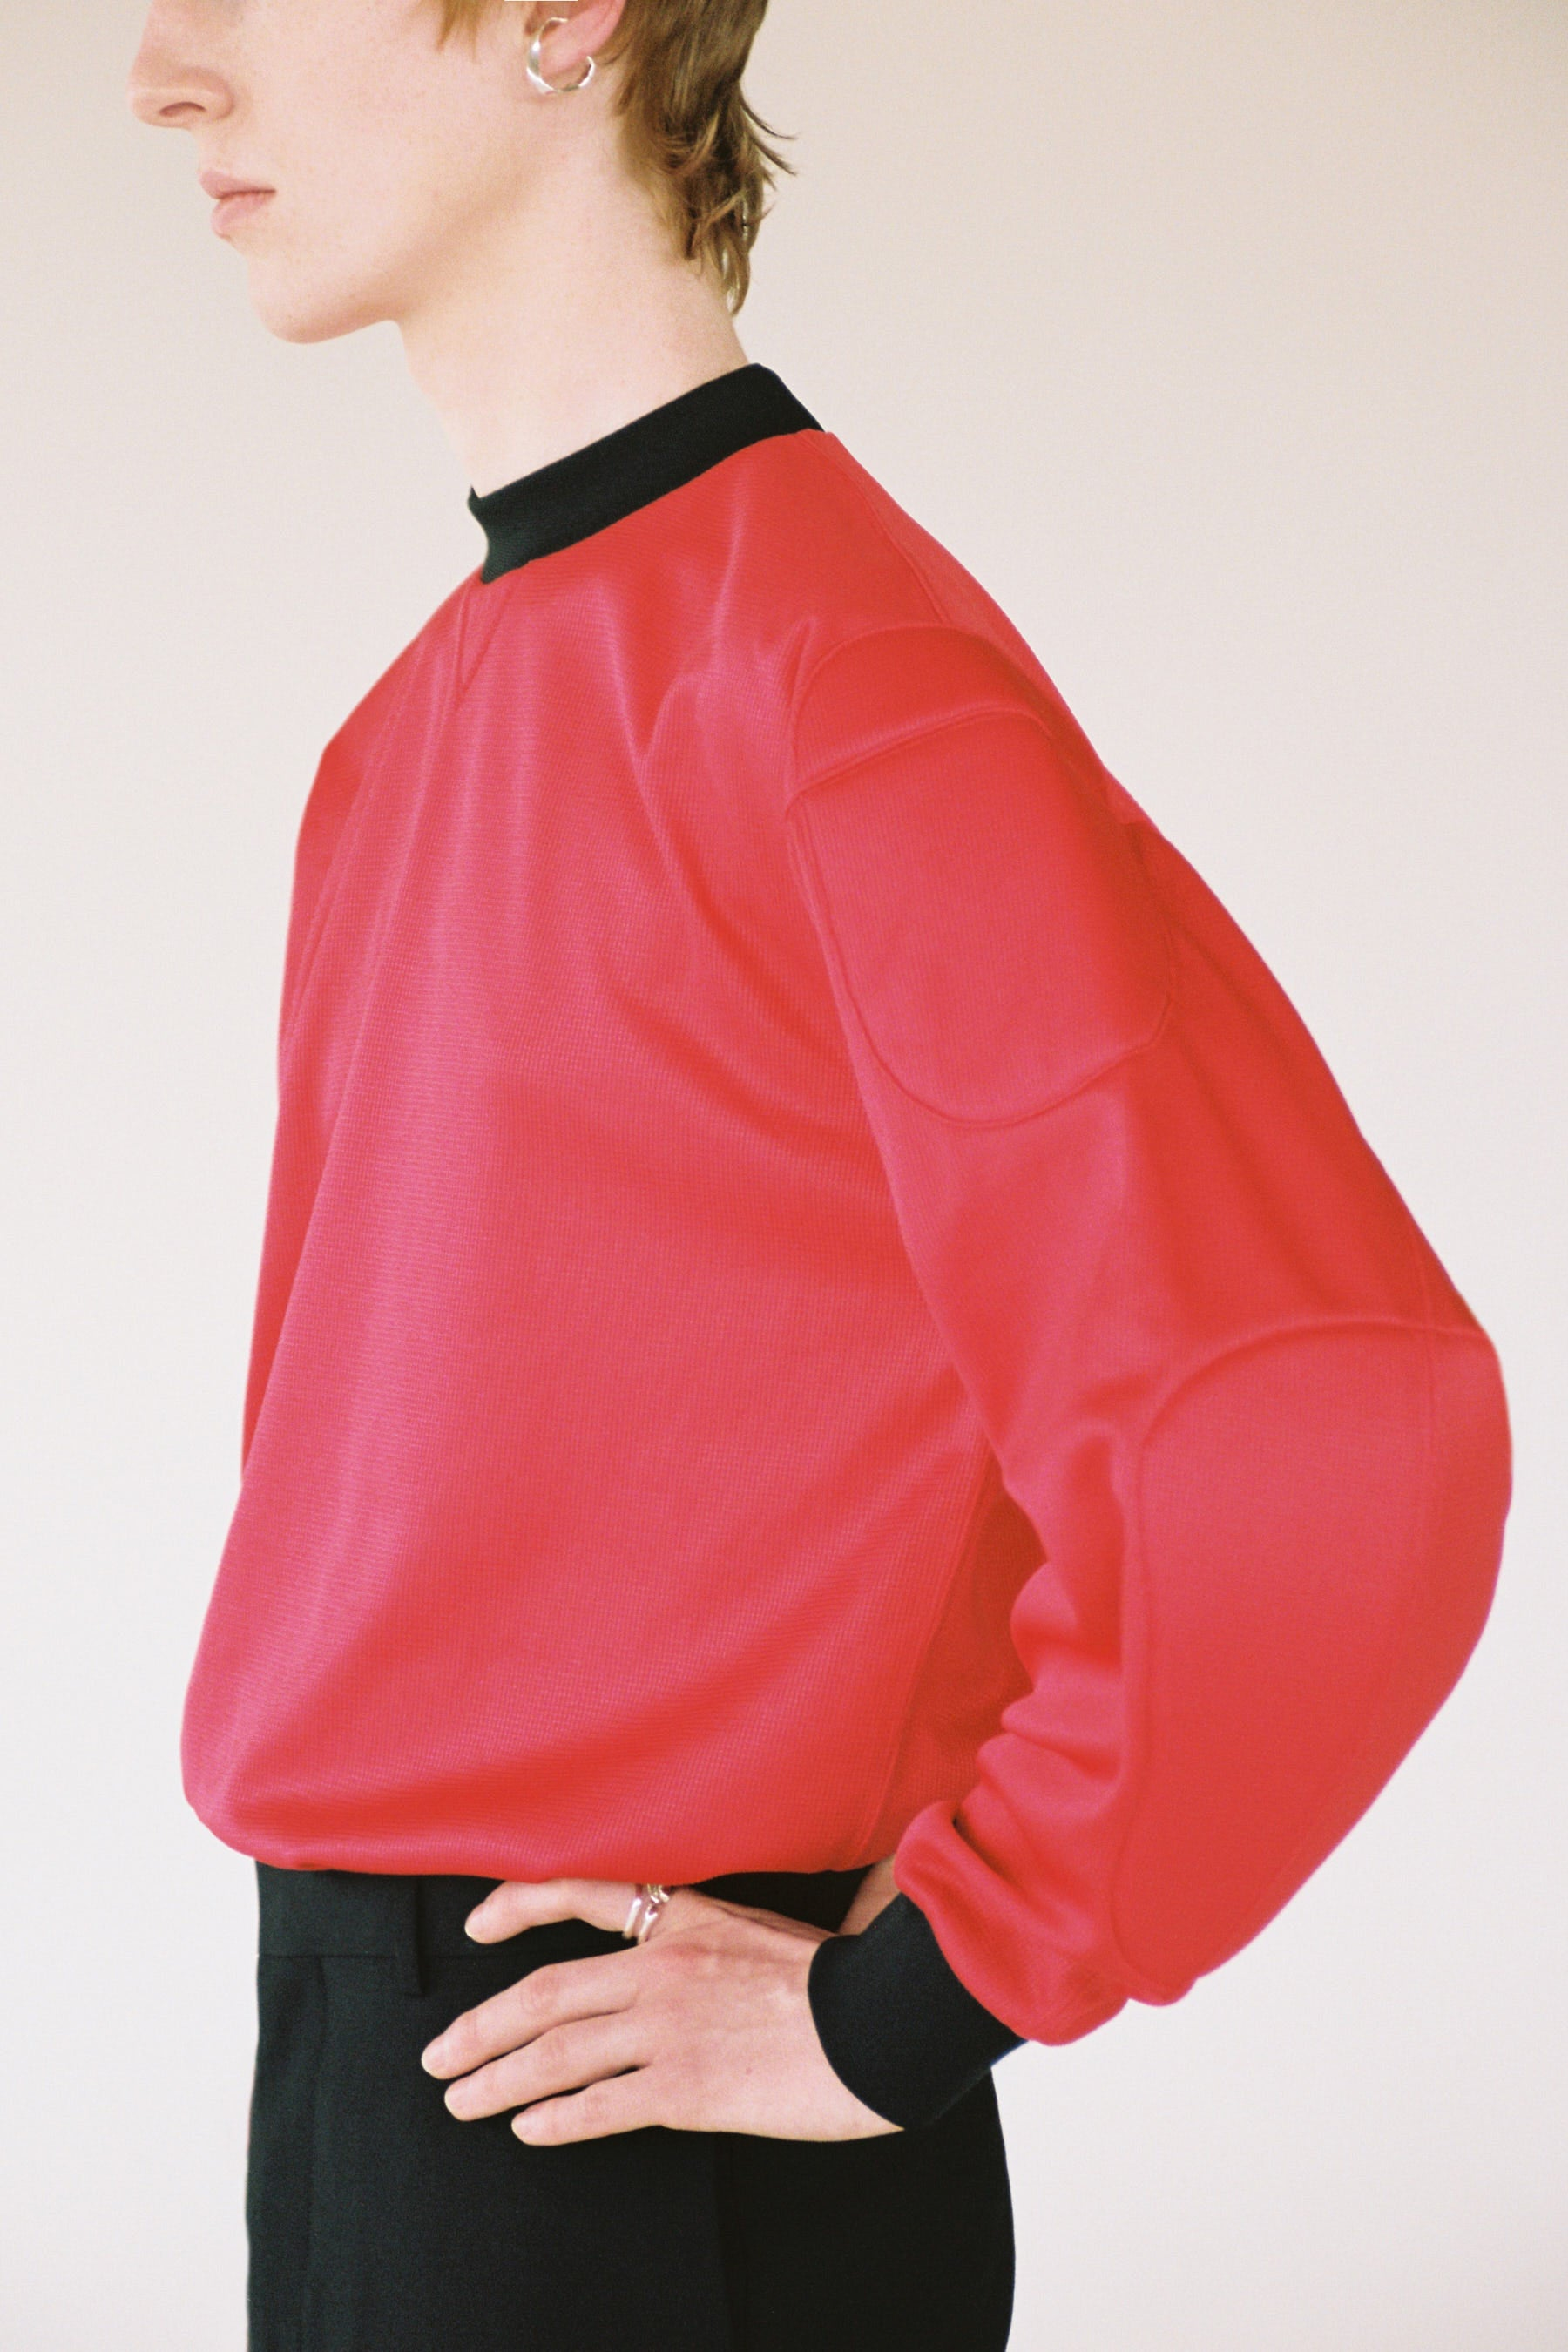 Red Strong Arm Padded Sweatshirt